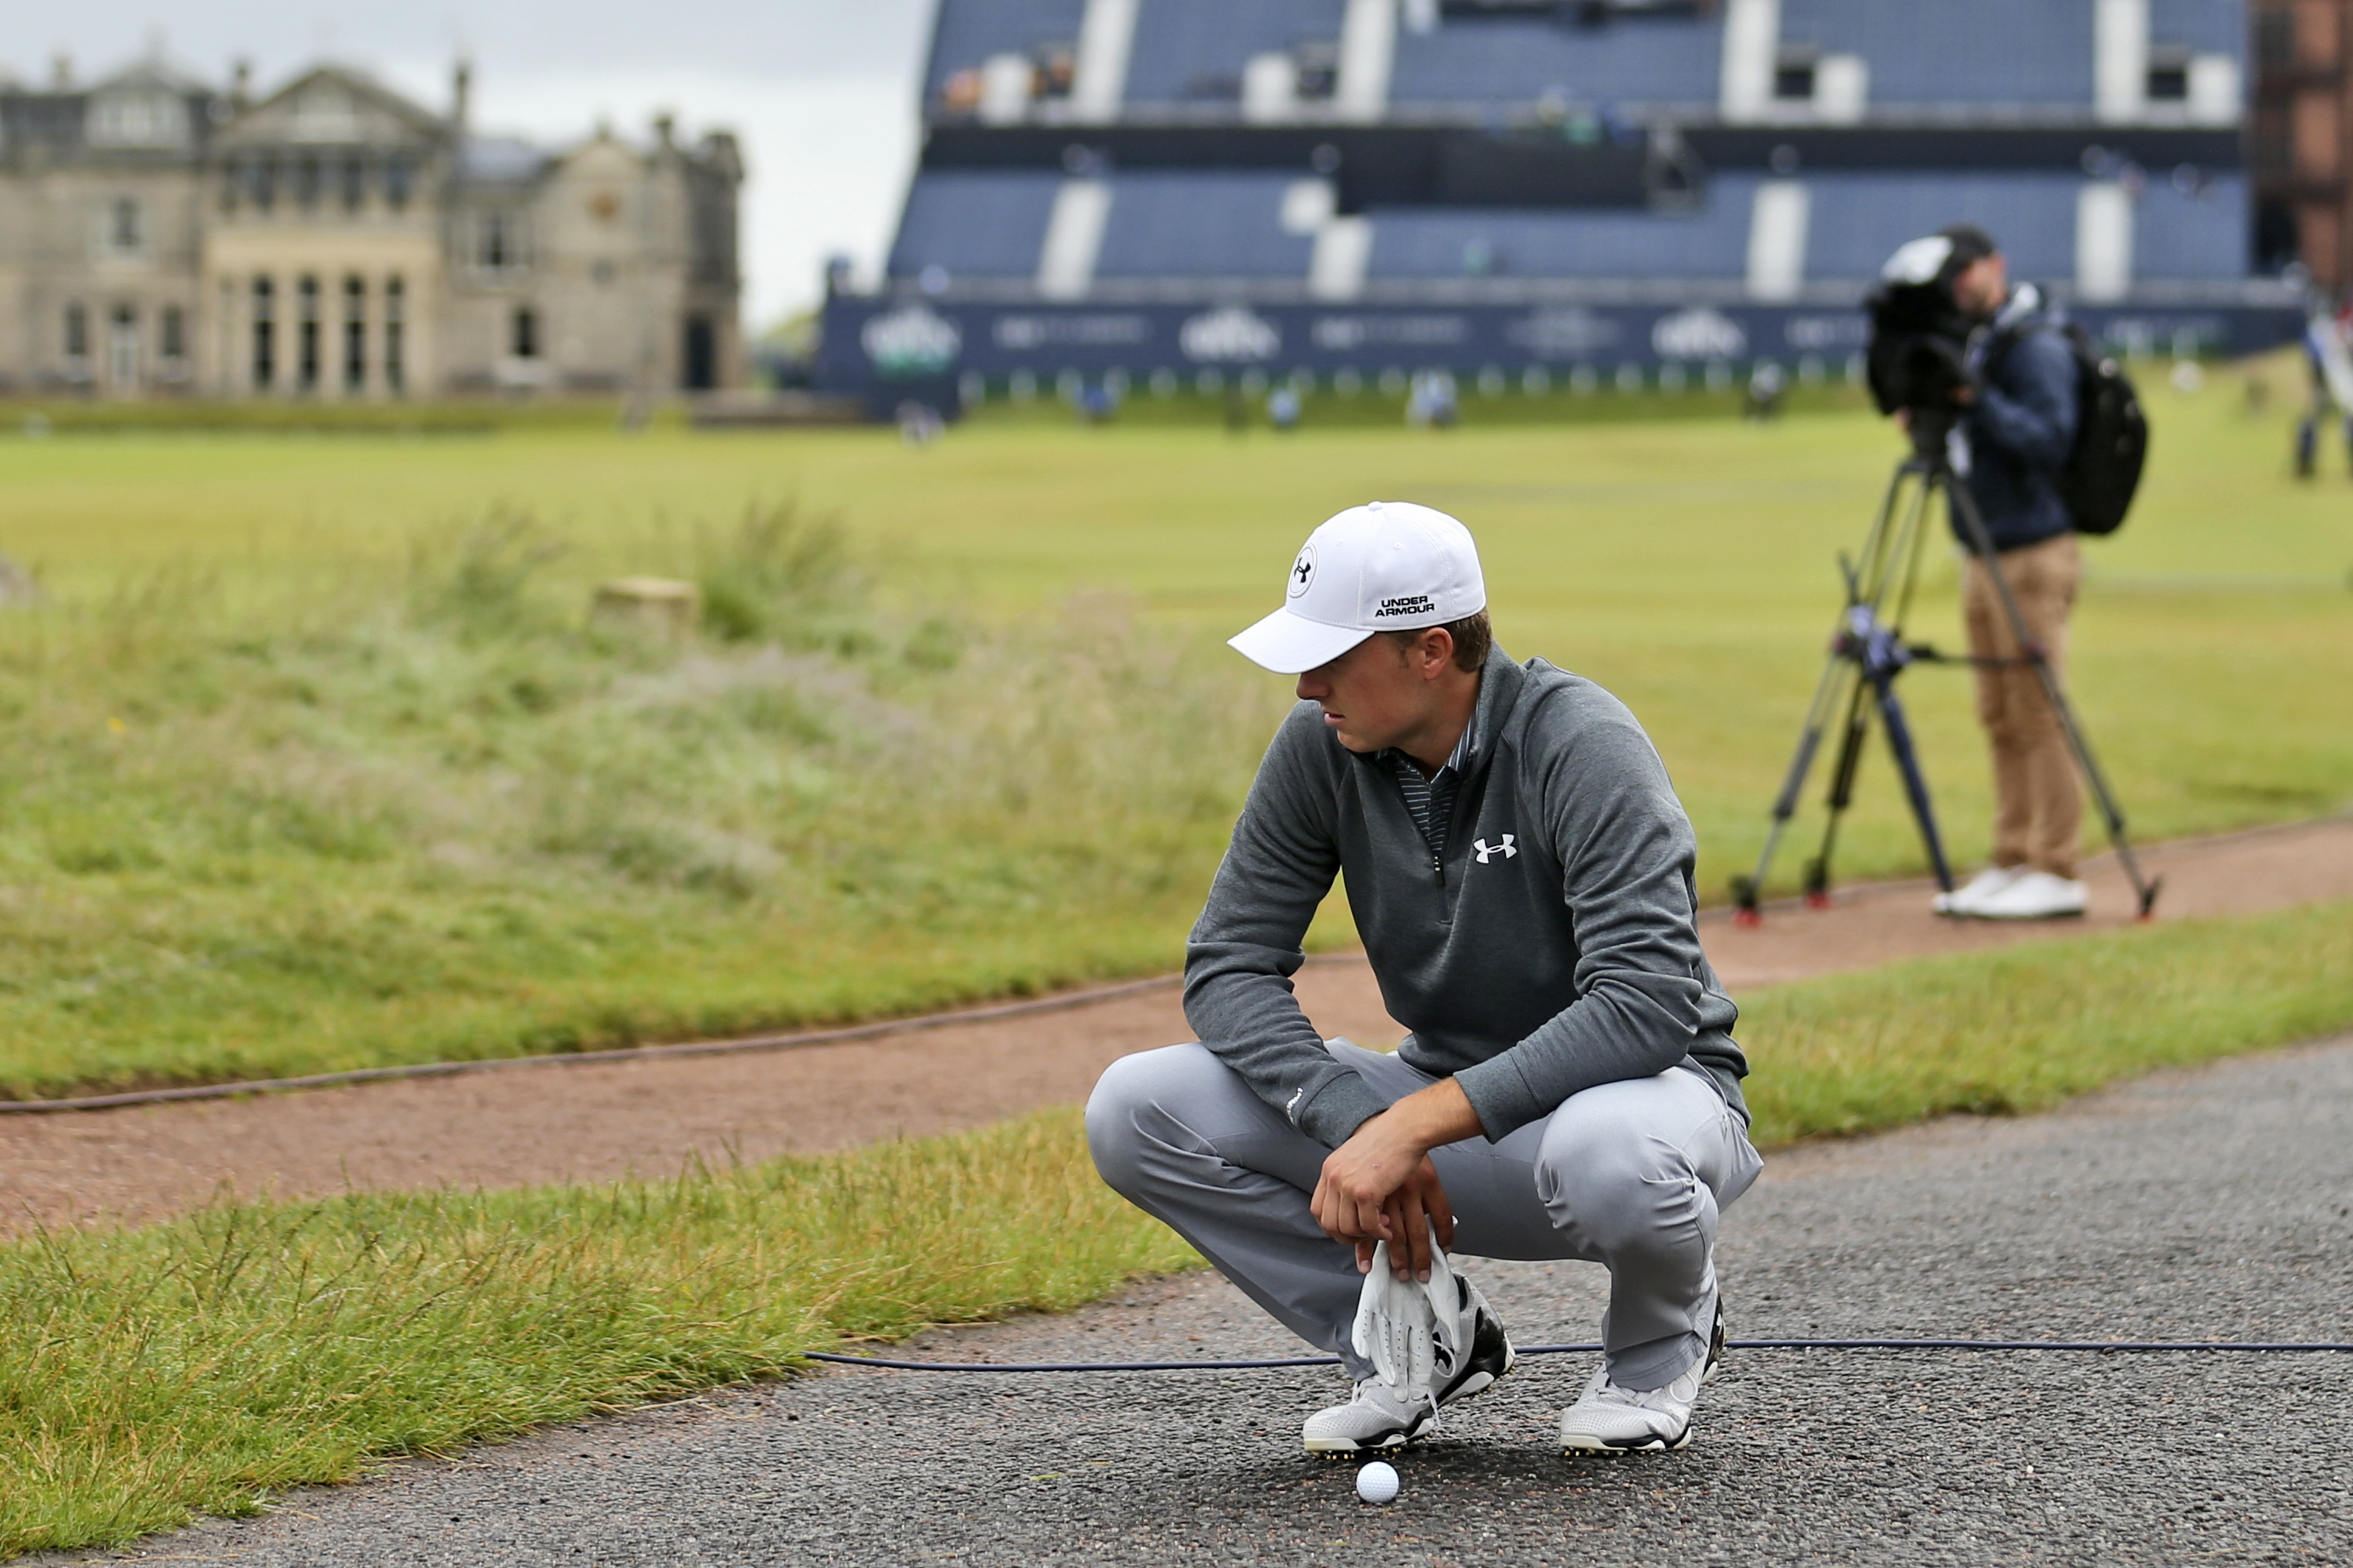 United States' Jordan Spieth looks at his ball on a path behind the 17th green during a practice round at the British Open Golf Championship at the Old Course, St. Andrews, Scotland, Wednesday, July 15, 2015. (AP Photo/Peter Morrison)